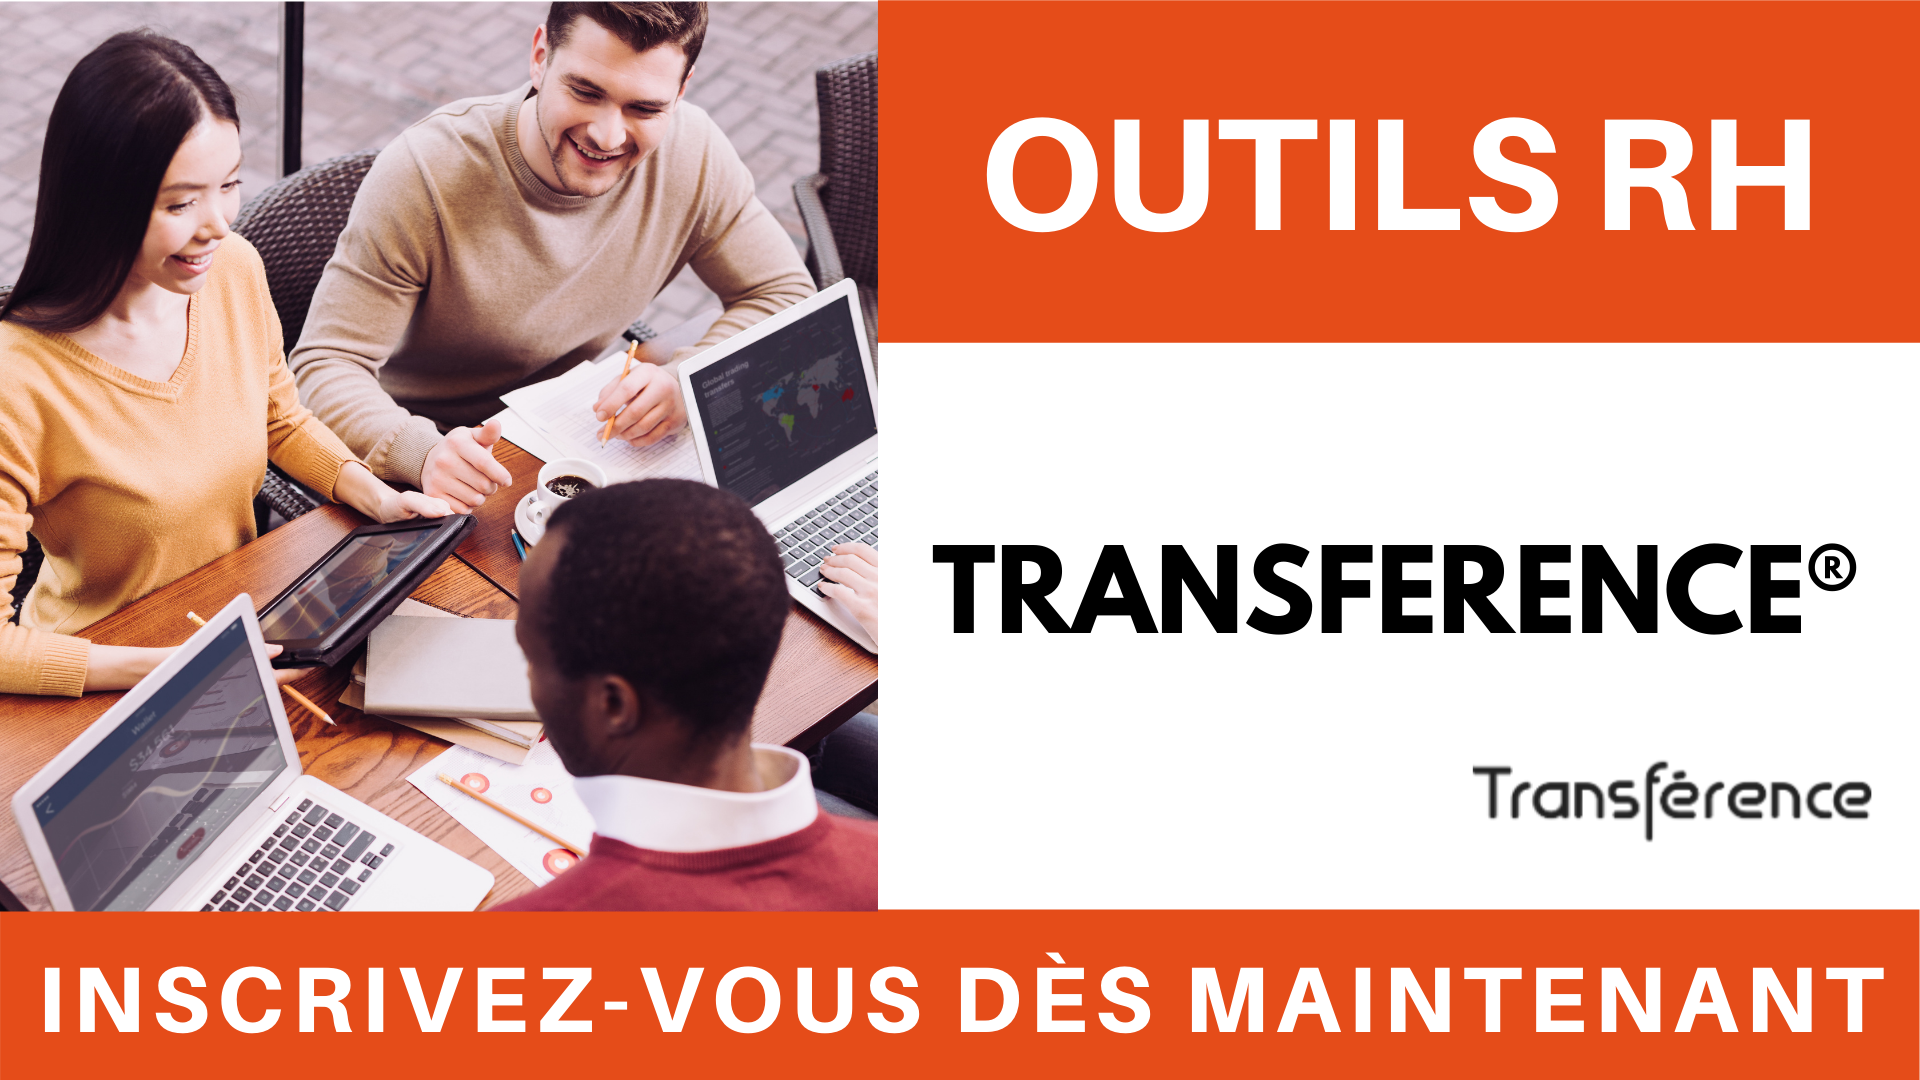 OUTILS RH - Transference